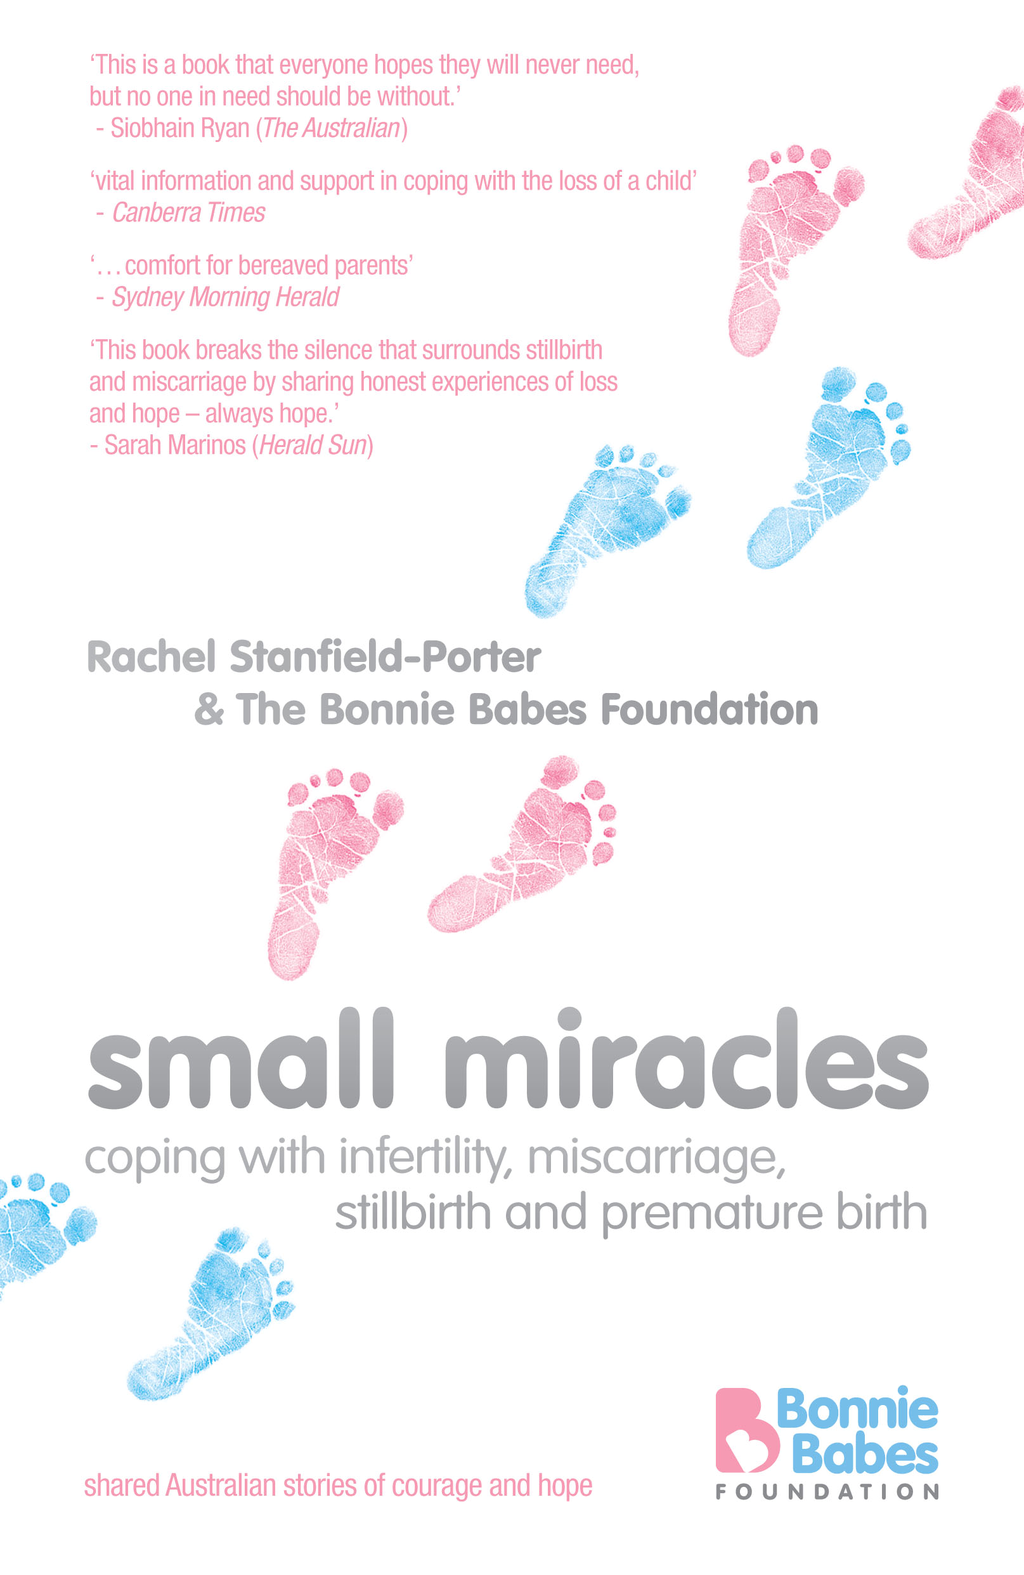 Small Miracles Coping with infertility,  miscarriage,  stillbirth and premature birth